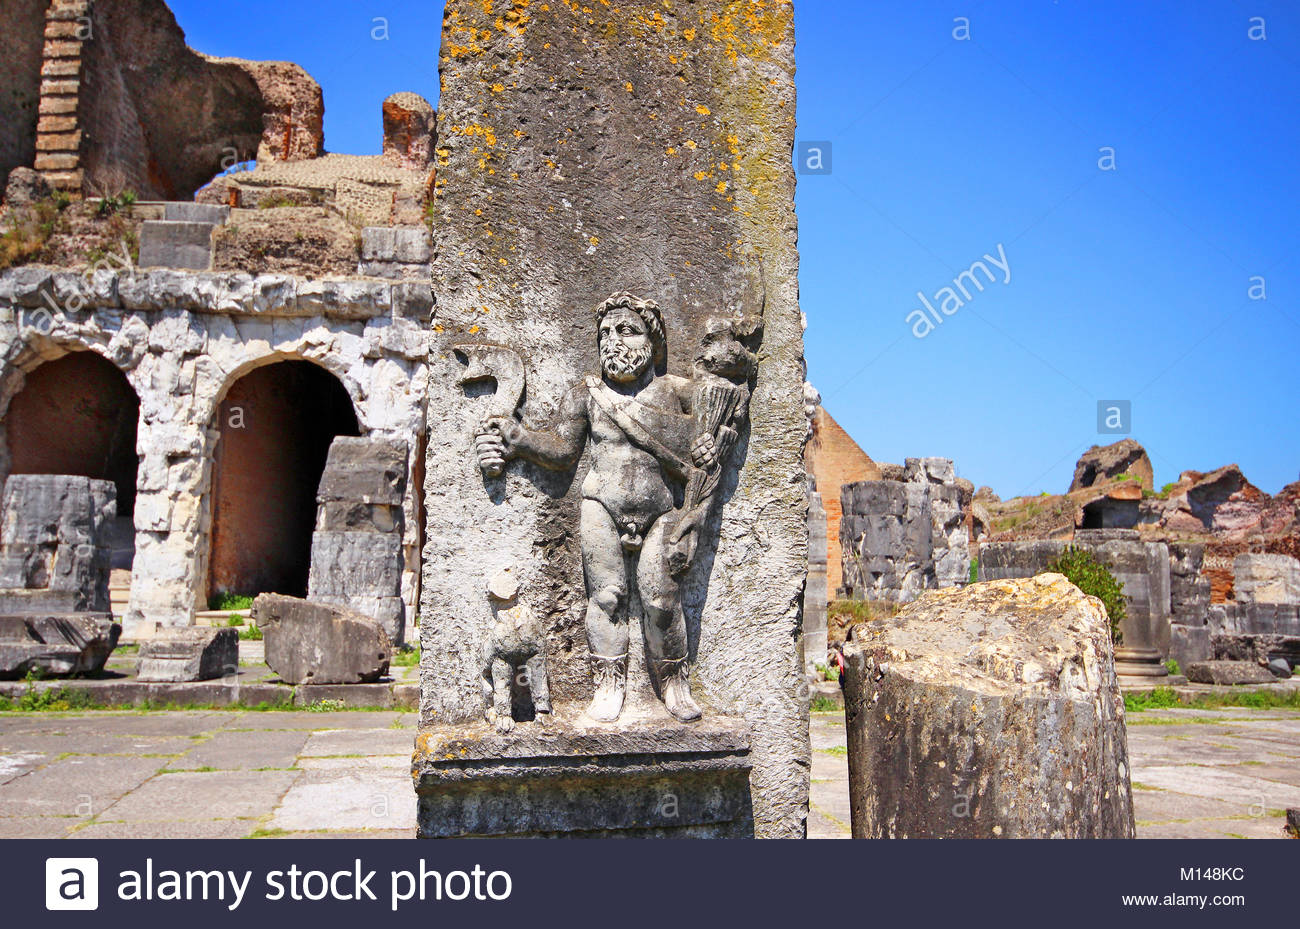 Roman amphitheatre of capua stock photos roman for Living arredamenti santa maria capua vetere